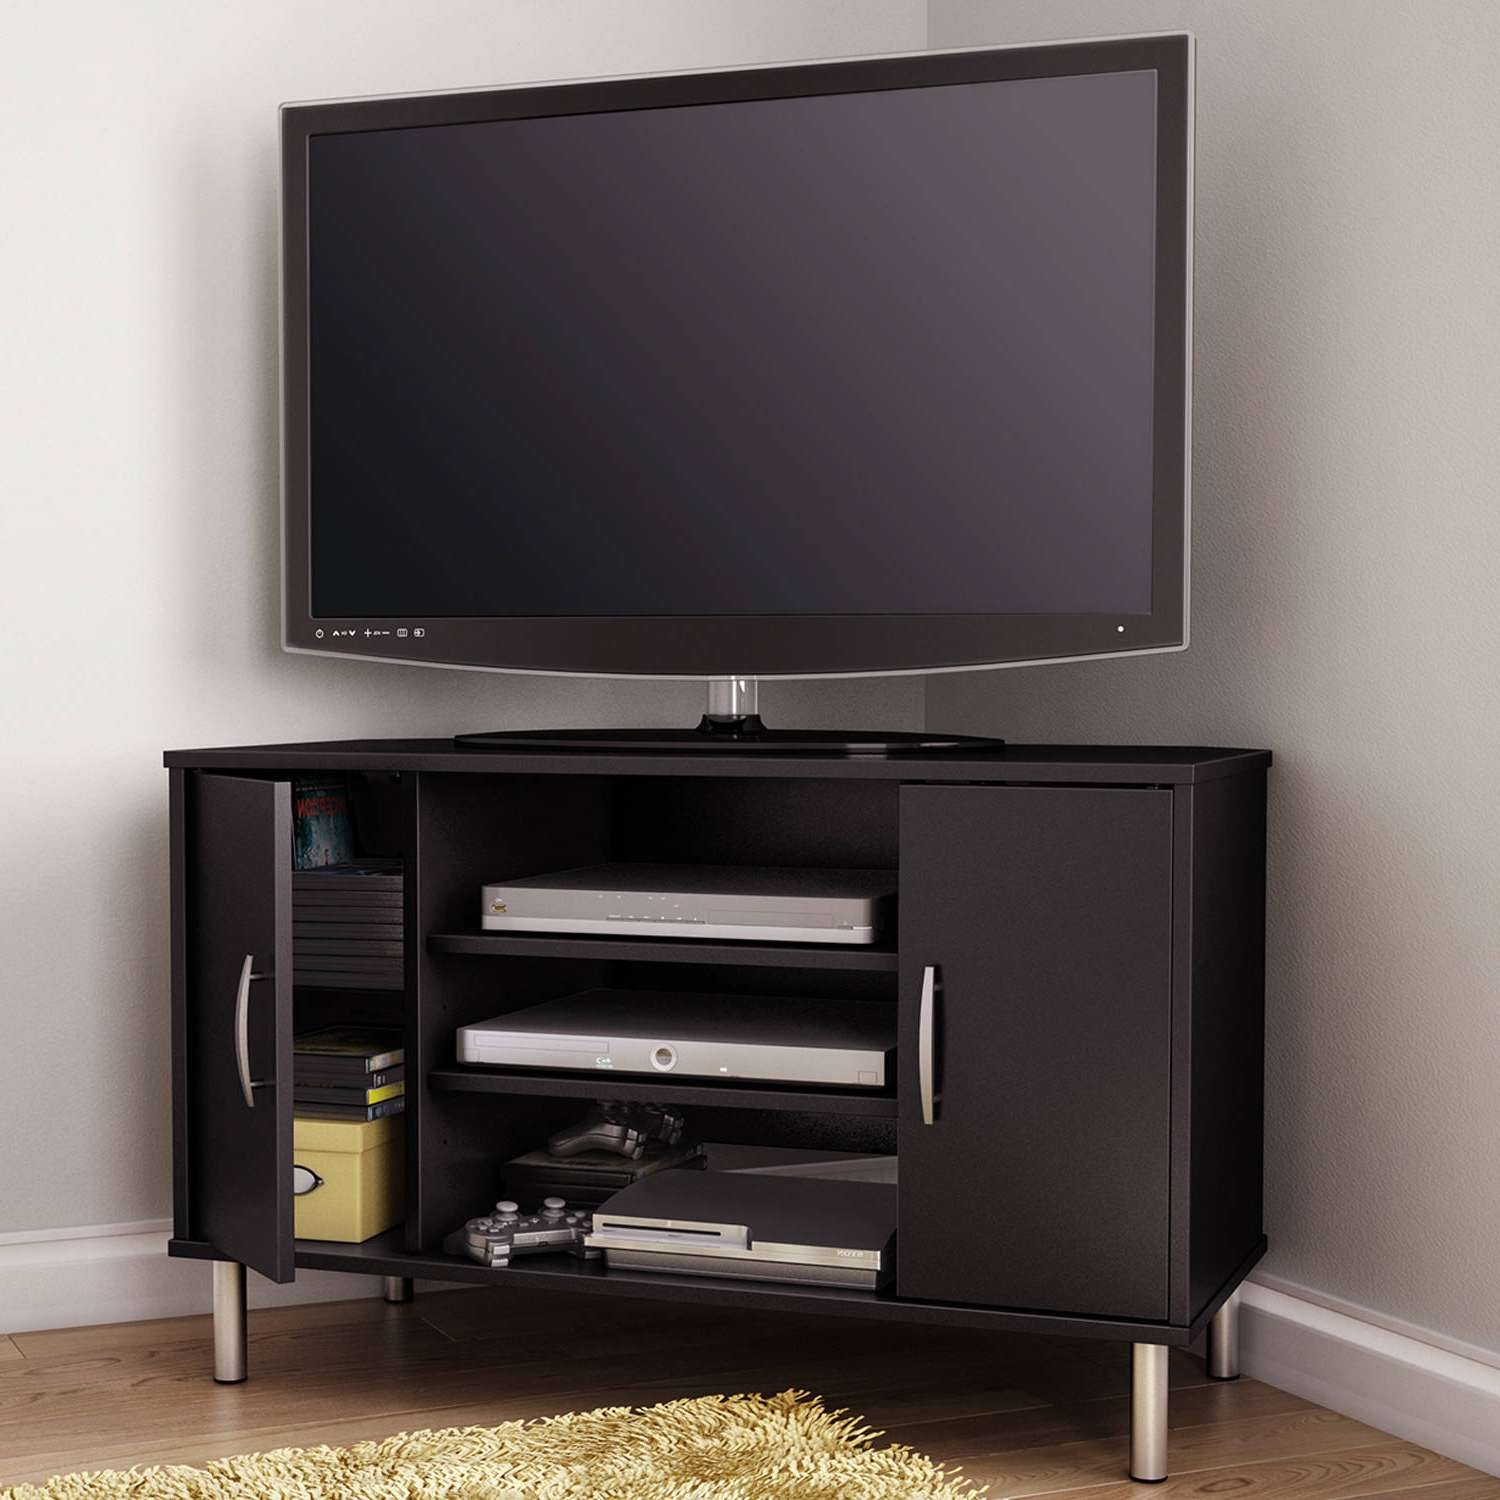 Tv Stand : Stirring Corner Tv Stand For Inch Photo Concept Flat Throughout Grey Corner Tv Stands (View 11 of 15)